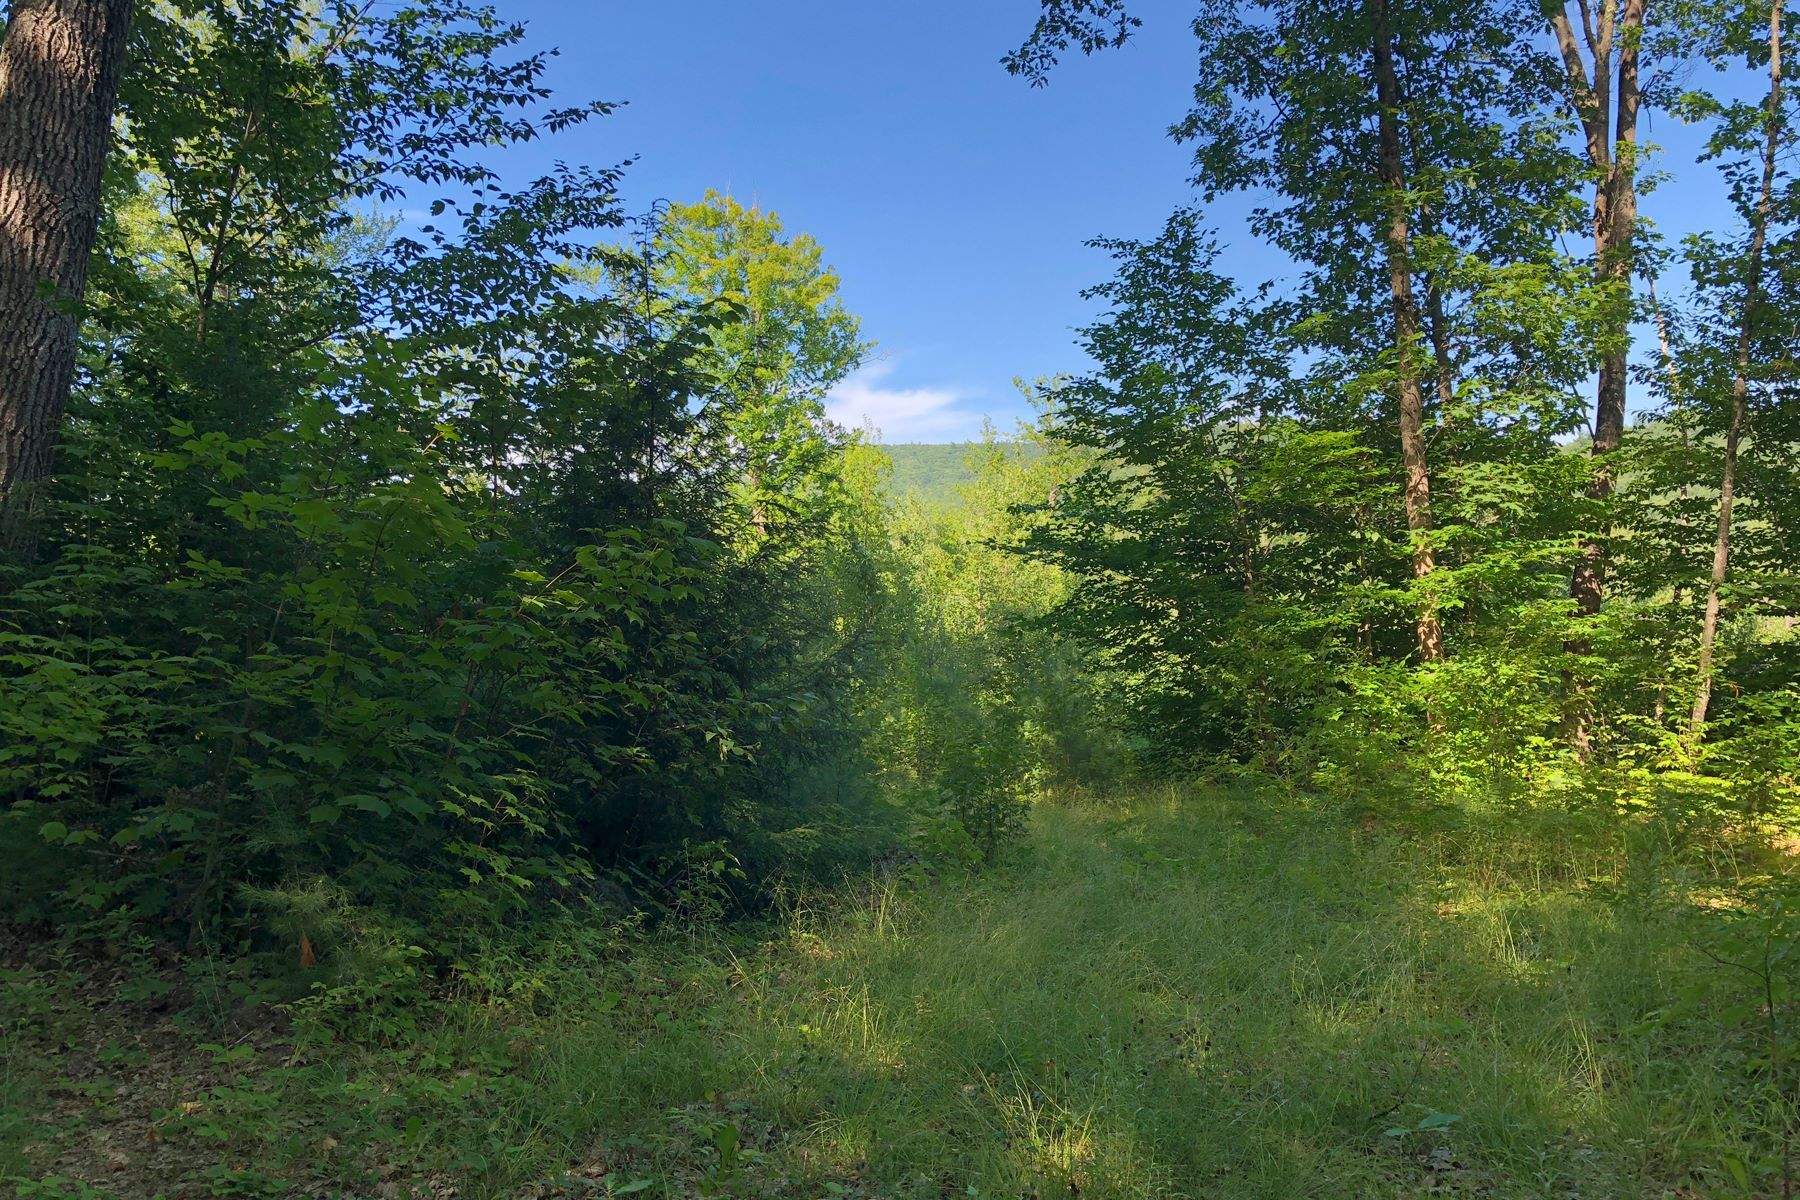 Land for Sale at 12 Page Road, Campton 12 Page Rd Campton, New Hampshire 03223 United States